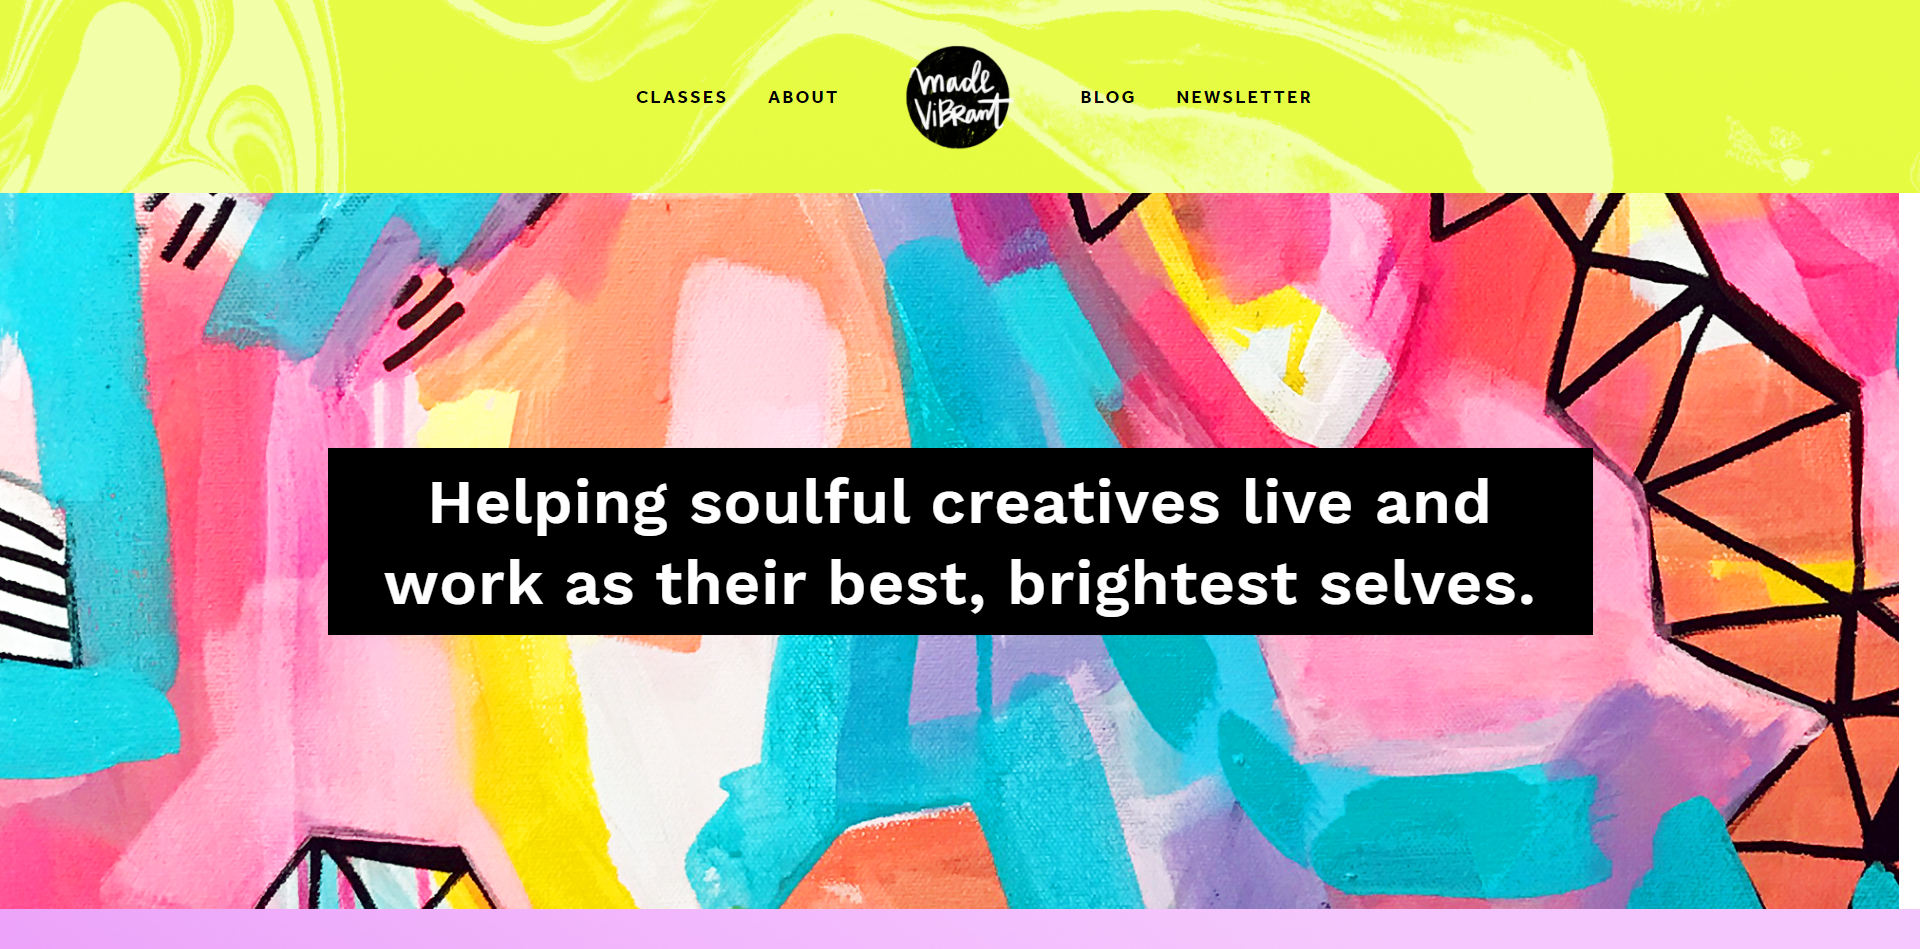 Made Vibrant - helping soulful creatives live and work as their brightest selves - via Caroline Zook